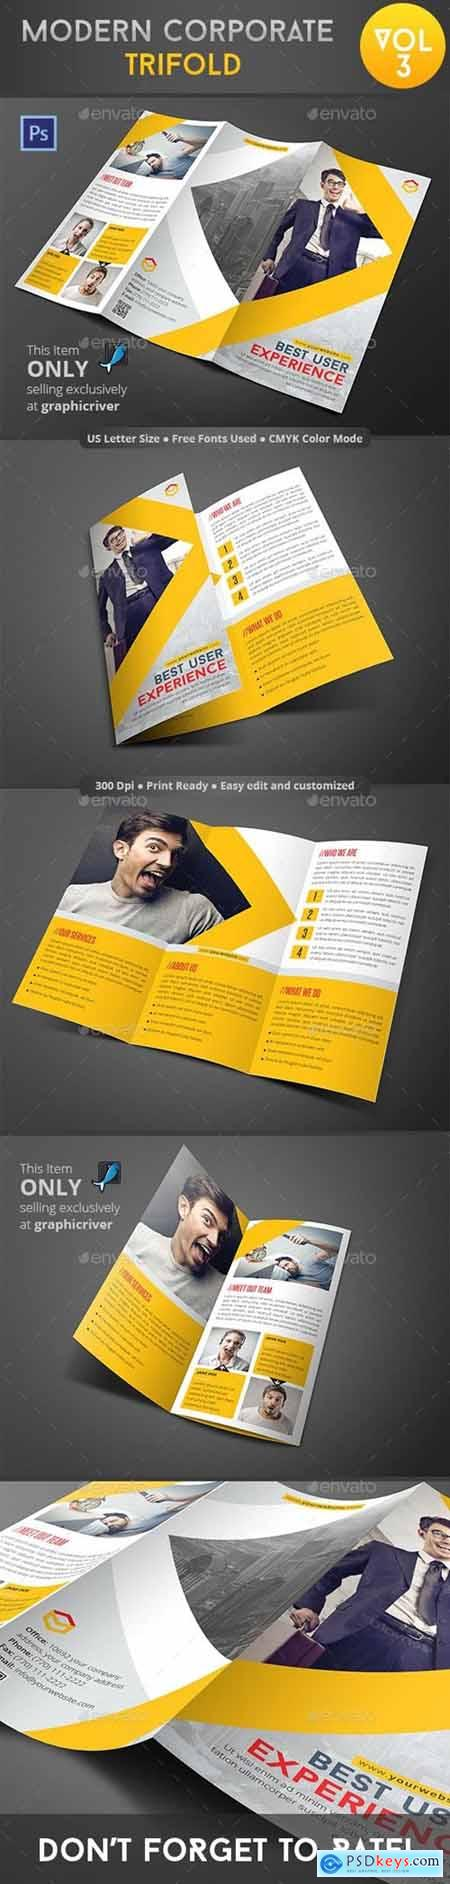 Modern Corporate Trifold Vol 3 9110236